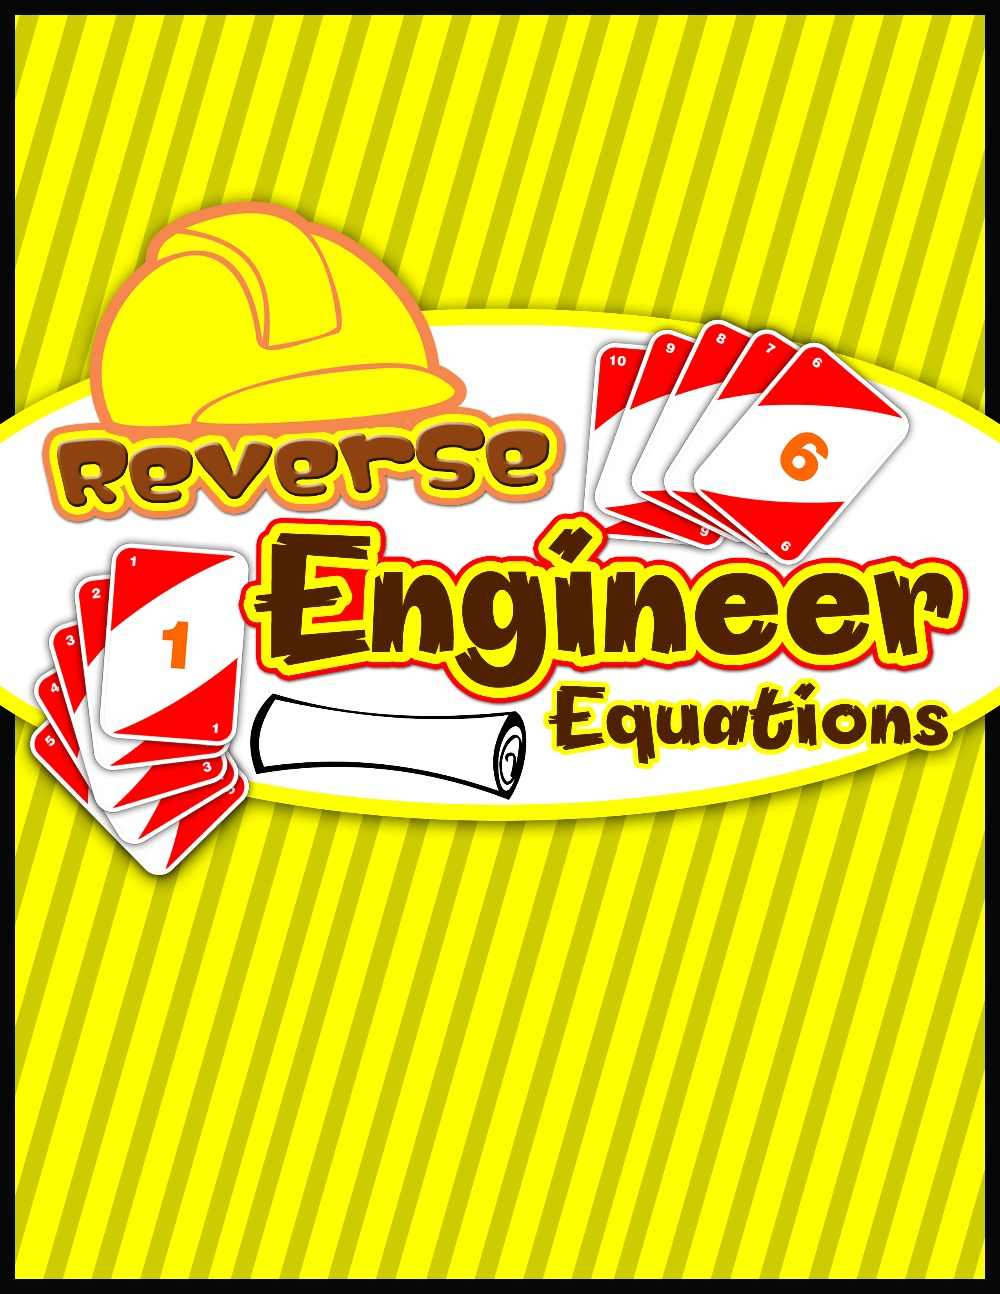 Reverse Engineer Equations